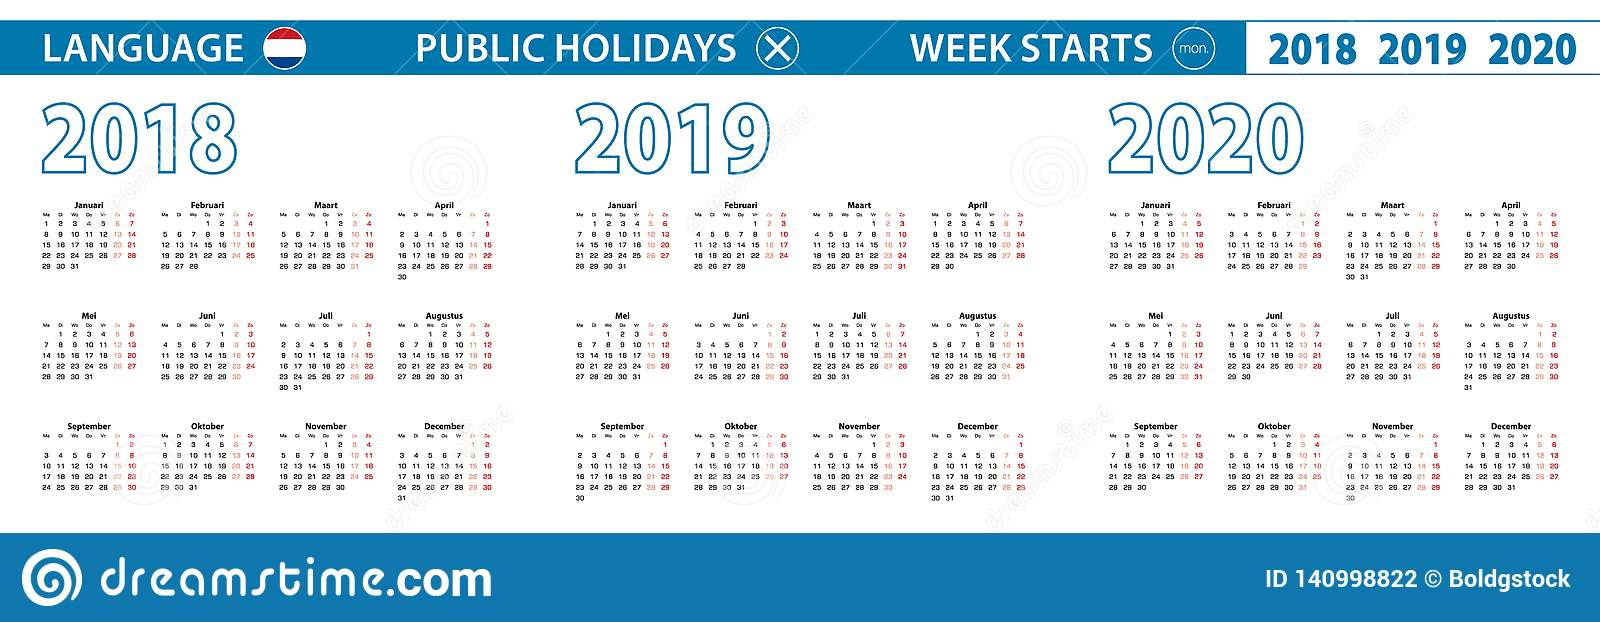 4 Week Schedule Template from thumbs.dreamstime.com